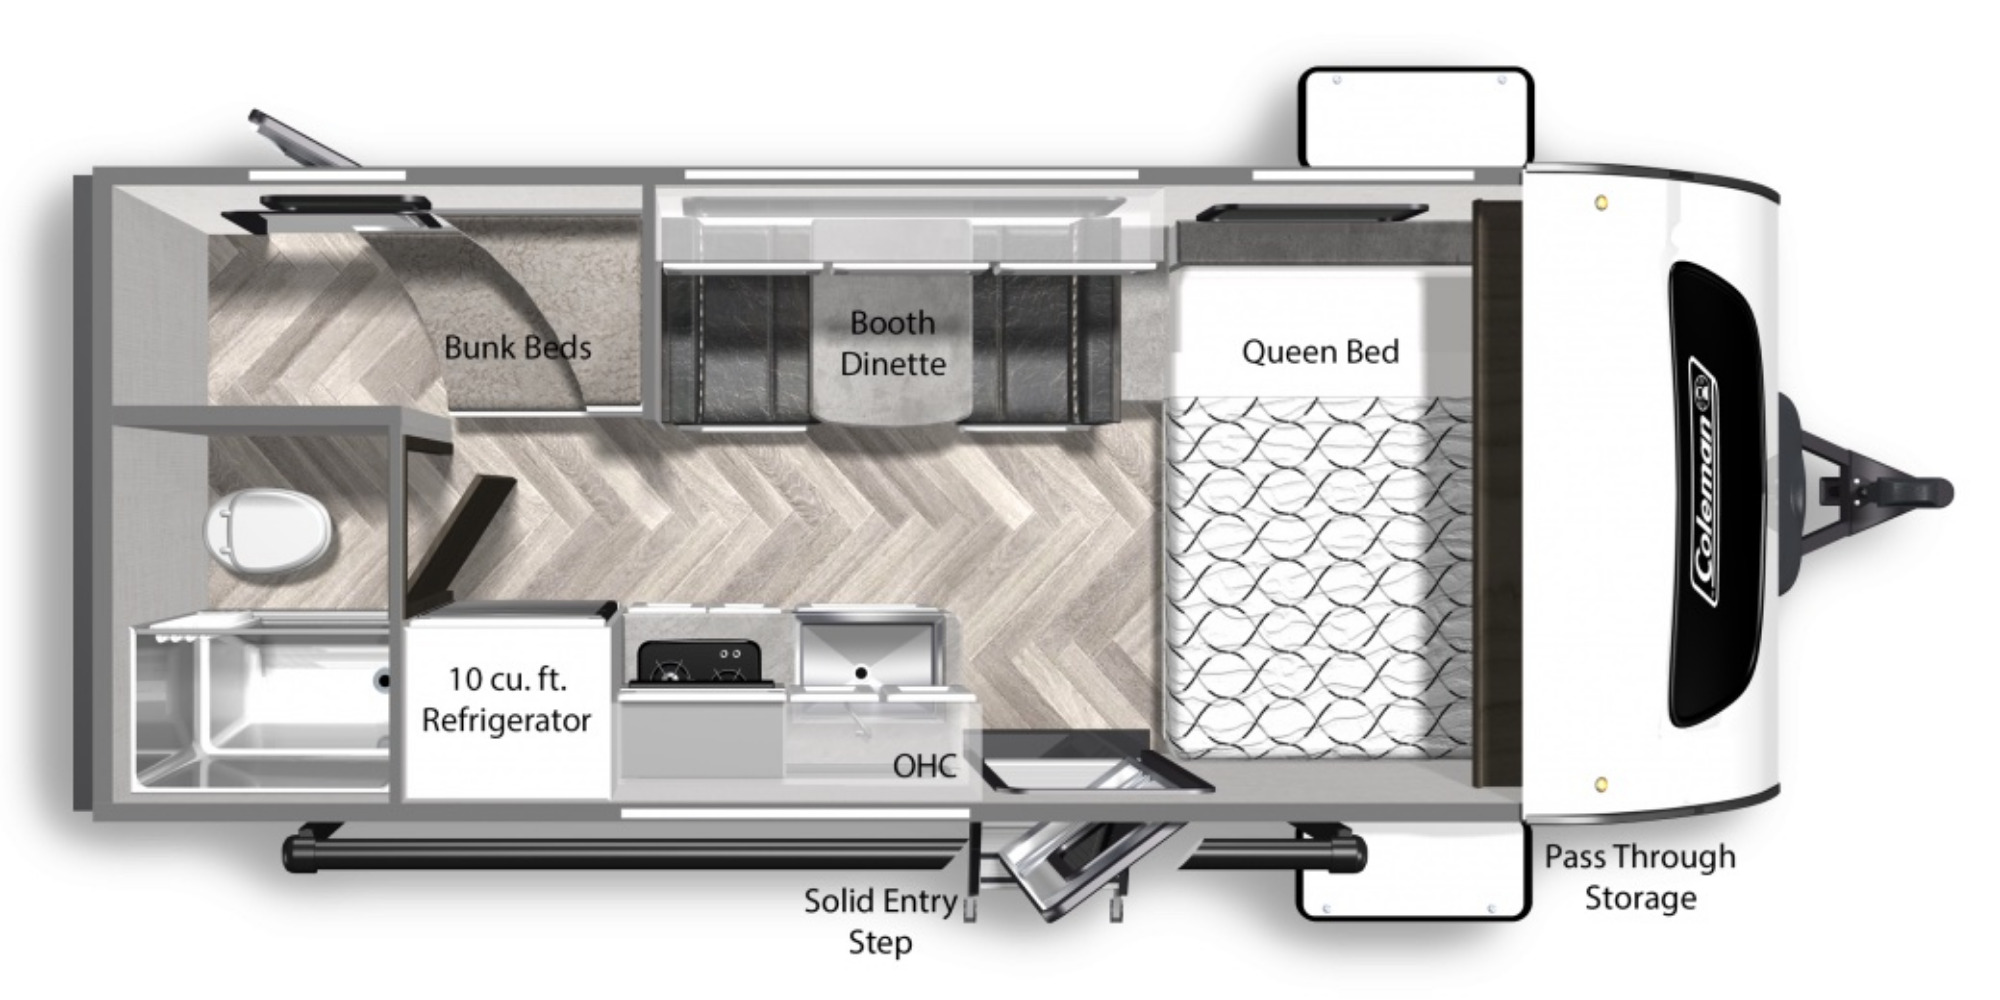 View Floor Plan for 2021 COLEMAN COLEMAN RUBICON 1628BH